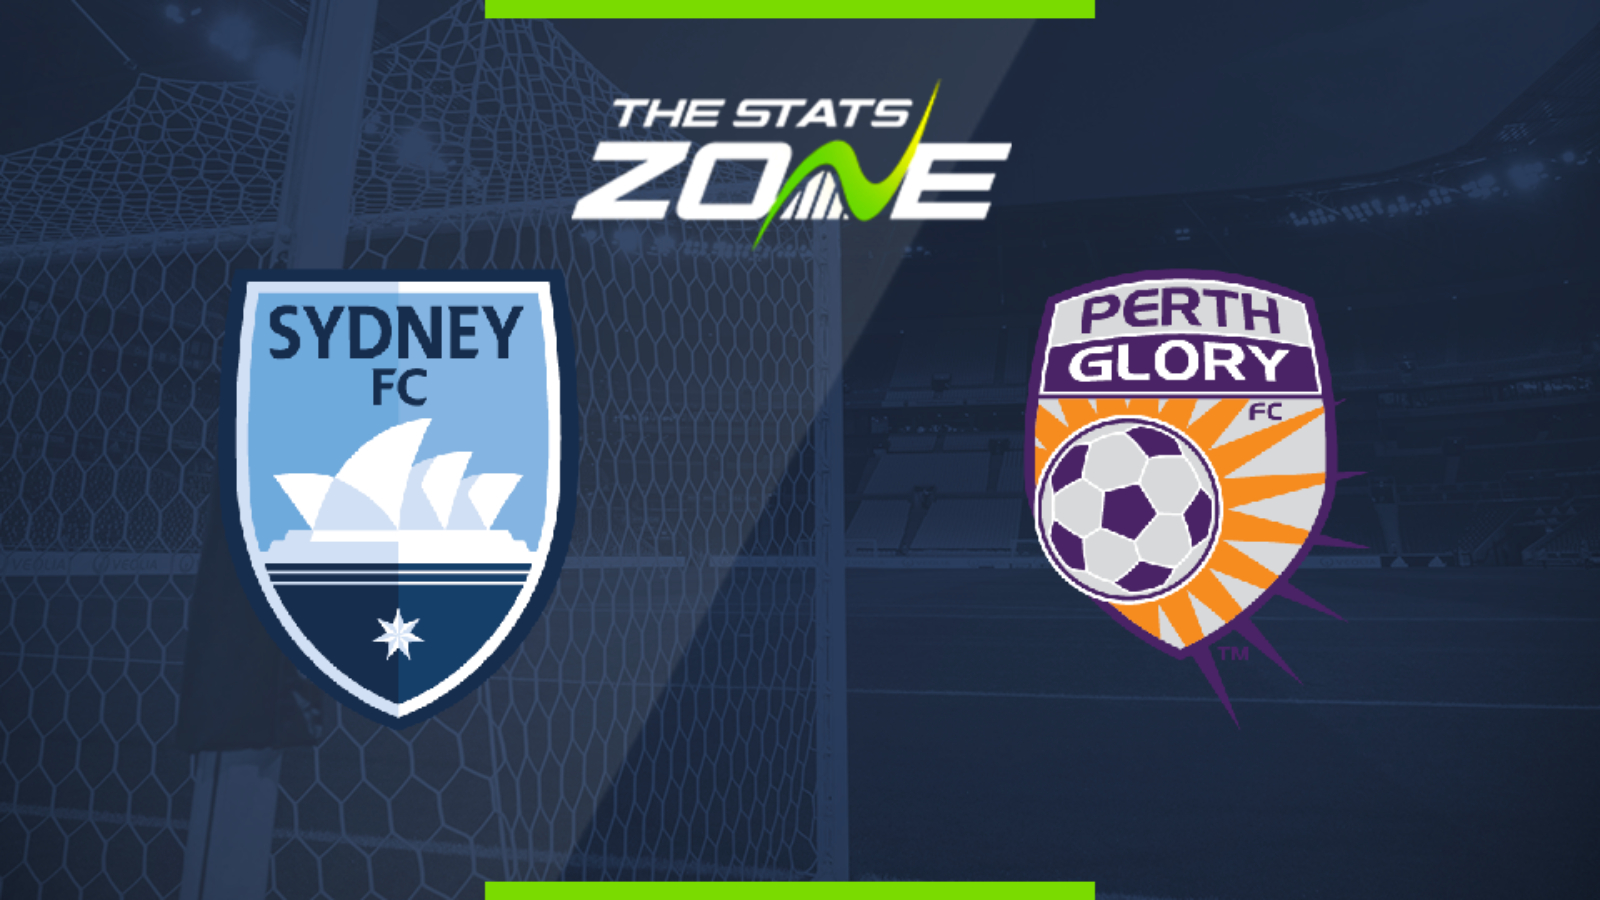 Perth glory vs sydney fc betting expert basketball how to clone scrypt based bitcoins rate